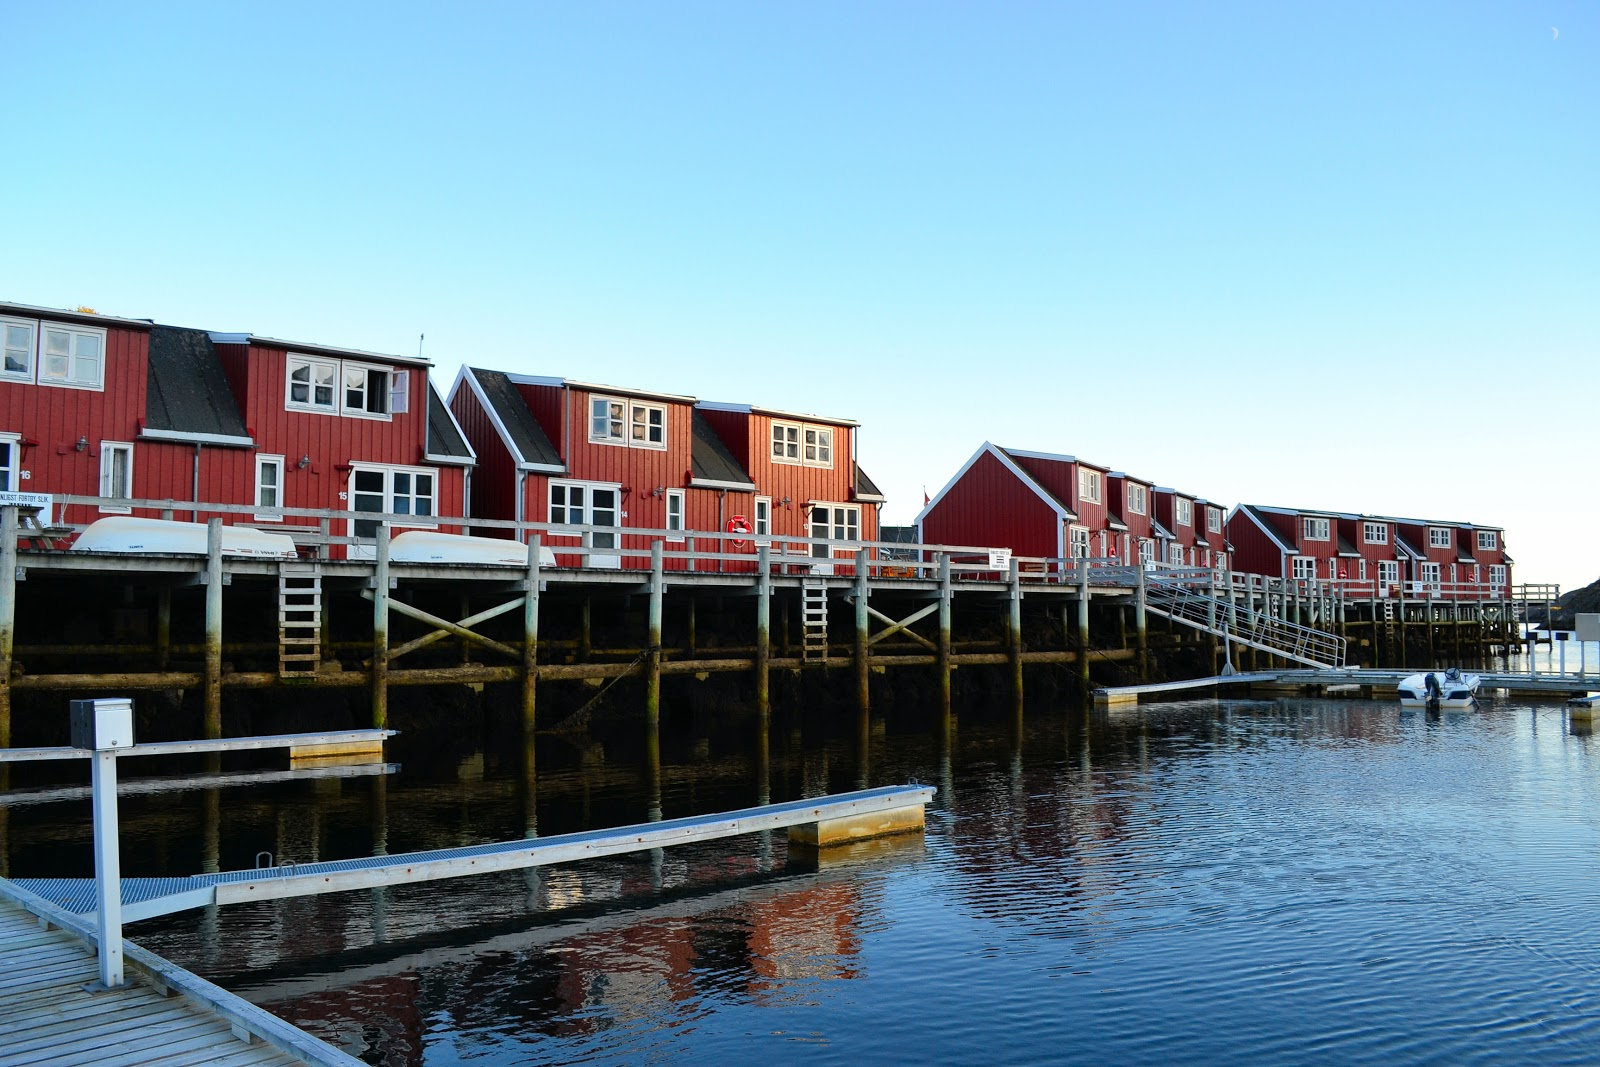 The picturesque rorbuer of Nyvågar Rorbuhotell.